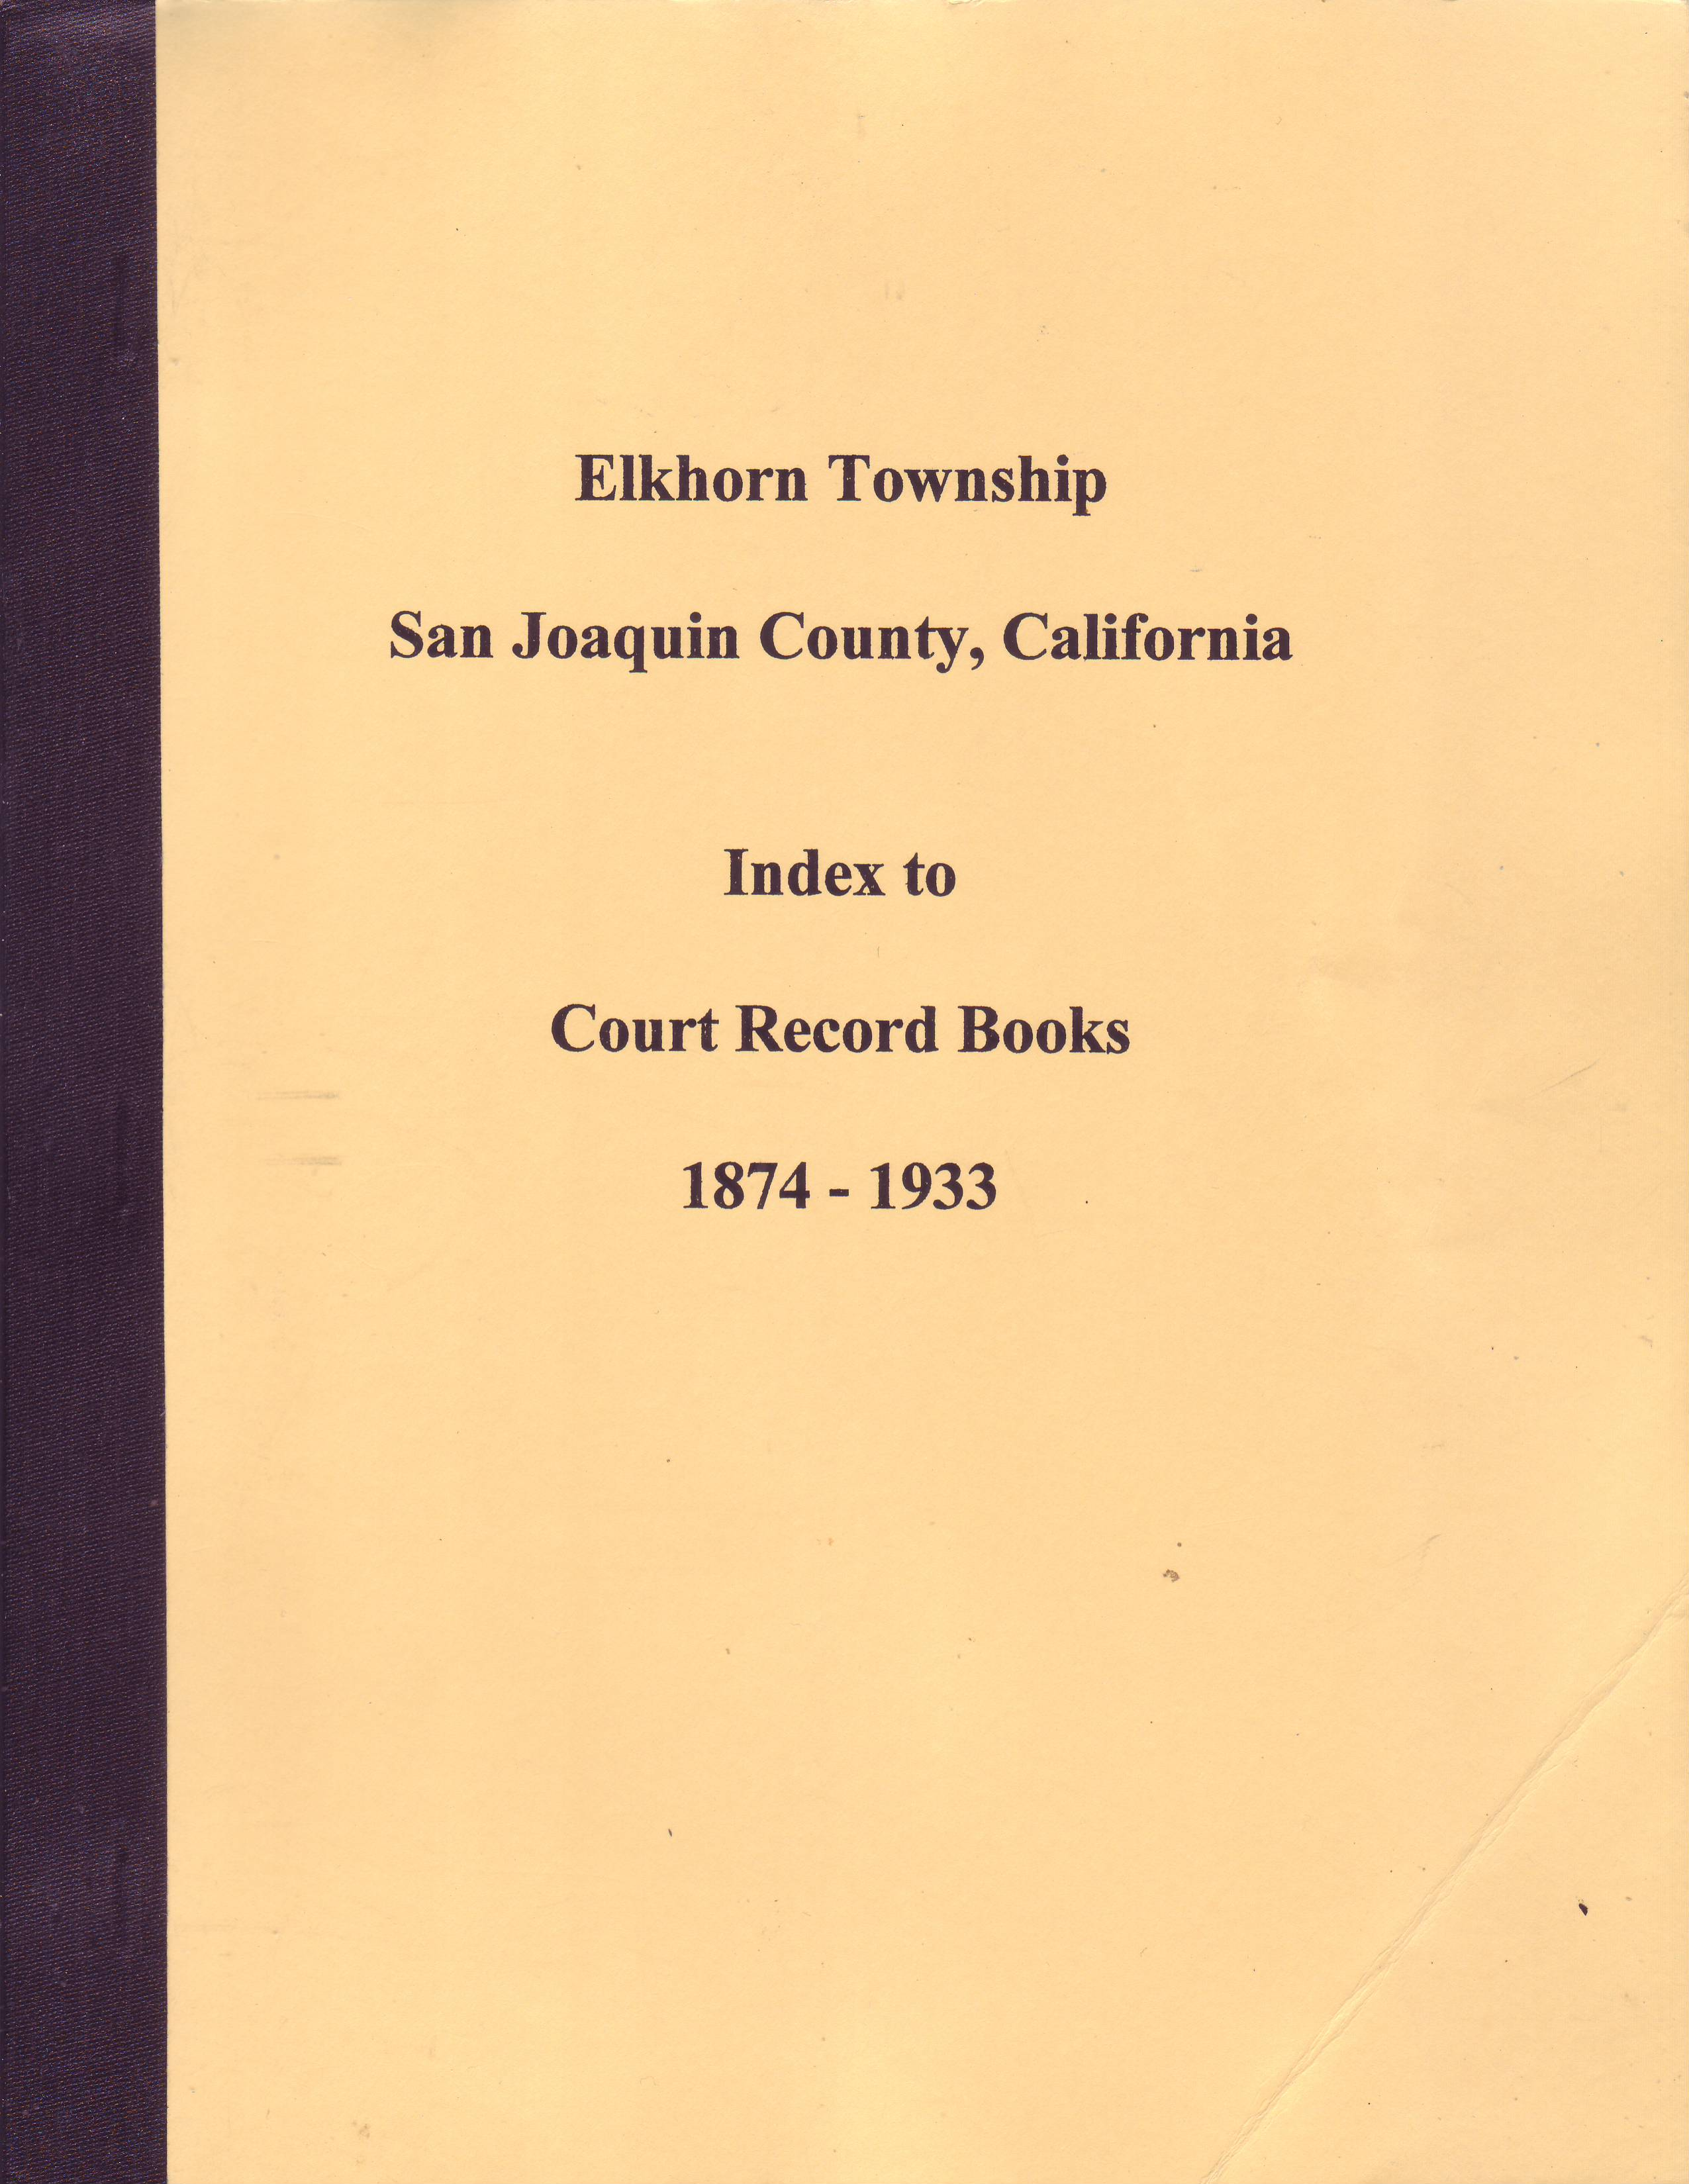 Elkhorn Township, San Joaquin County, California, Index to Court Record Books, 1874–1933